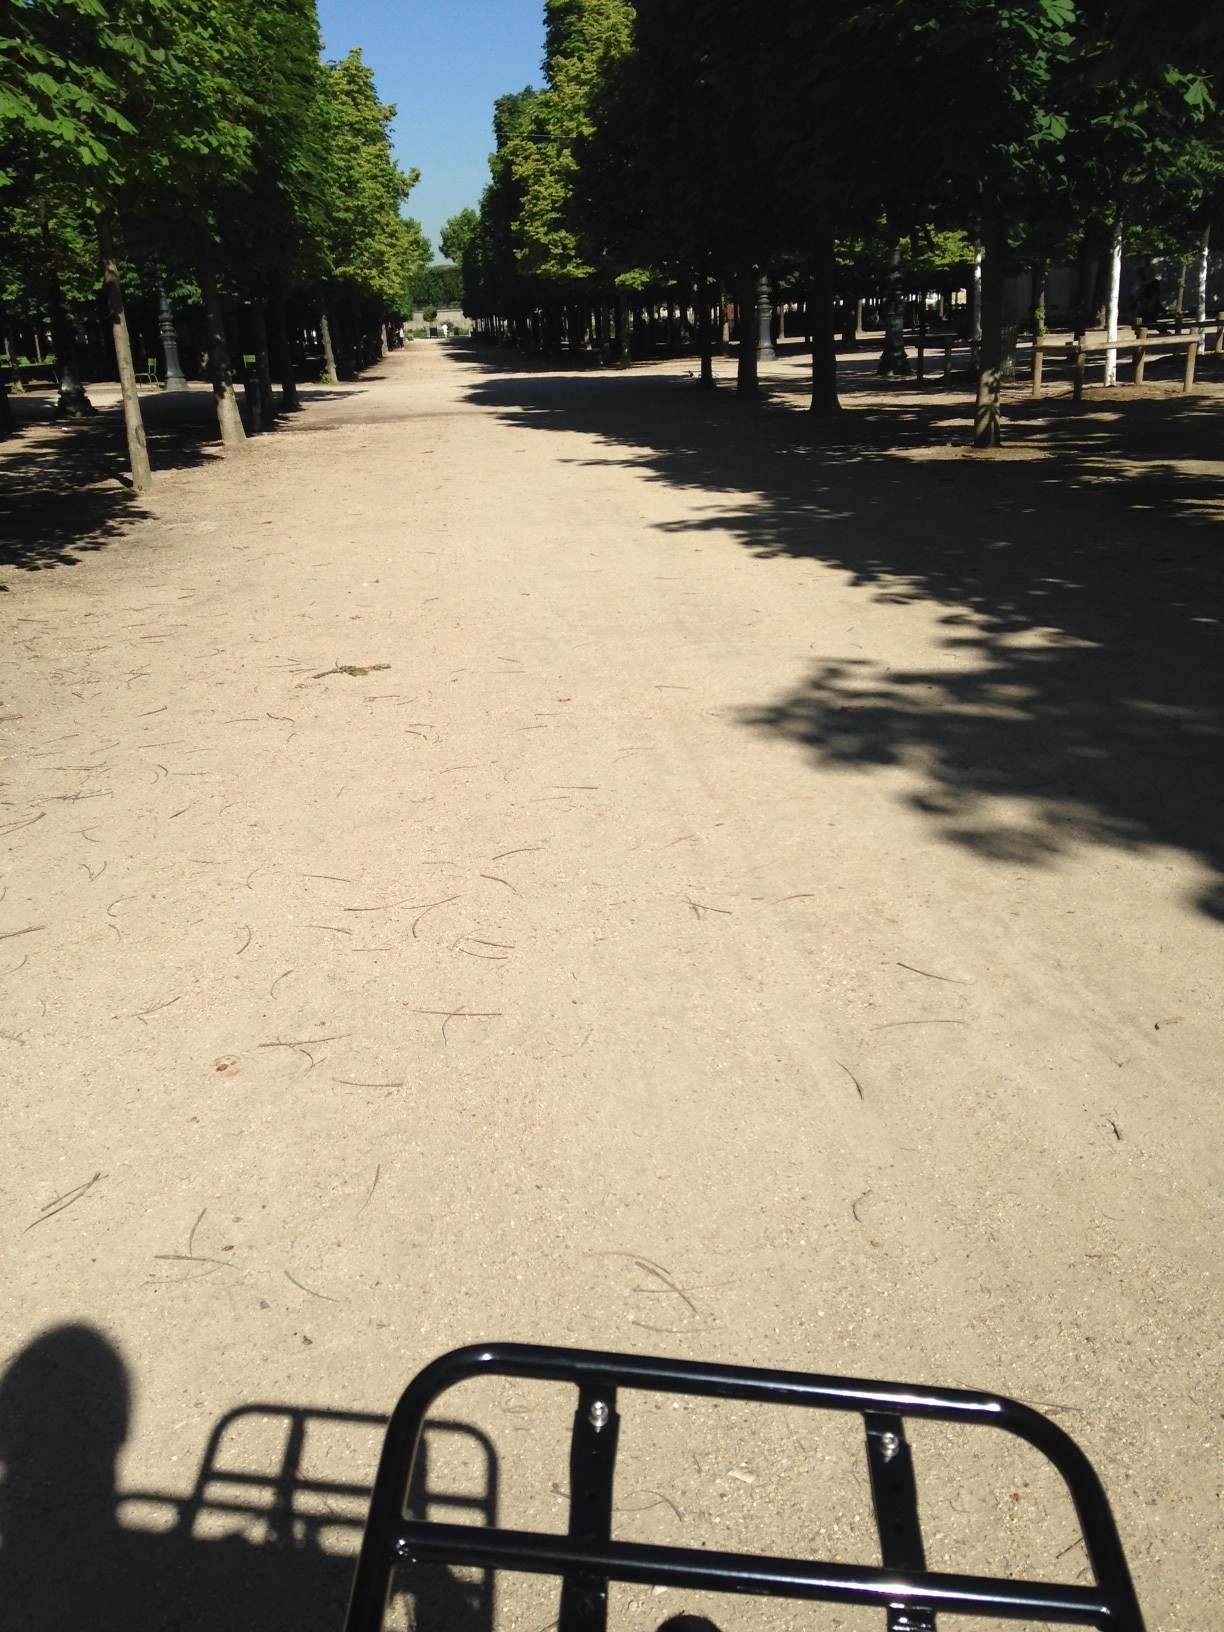 Feeling like a Parisienne in the Tuileries...